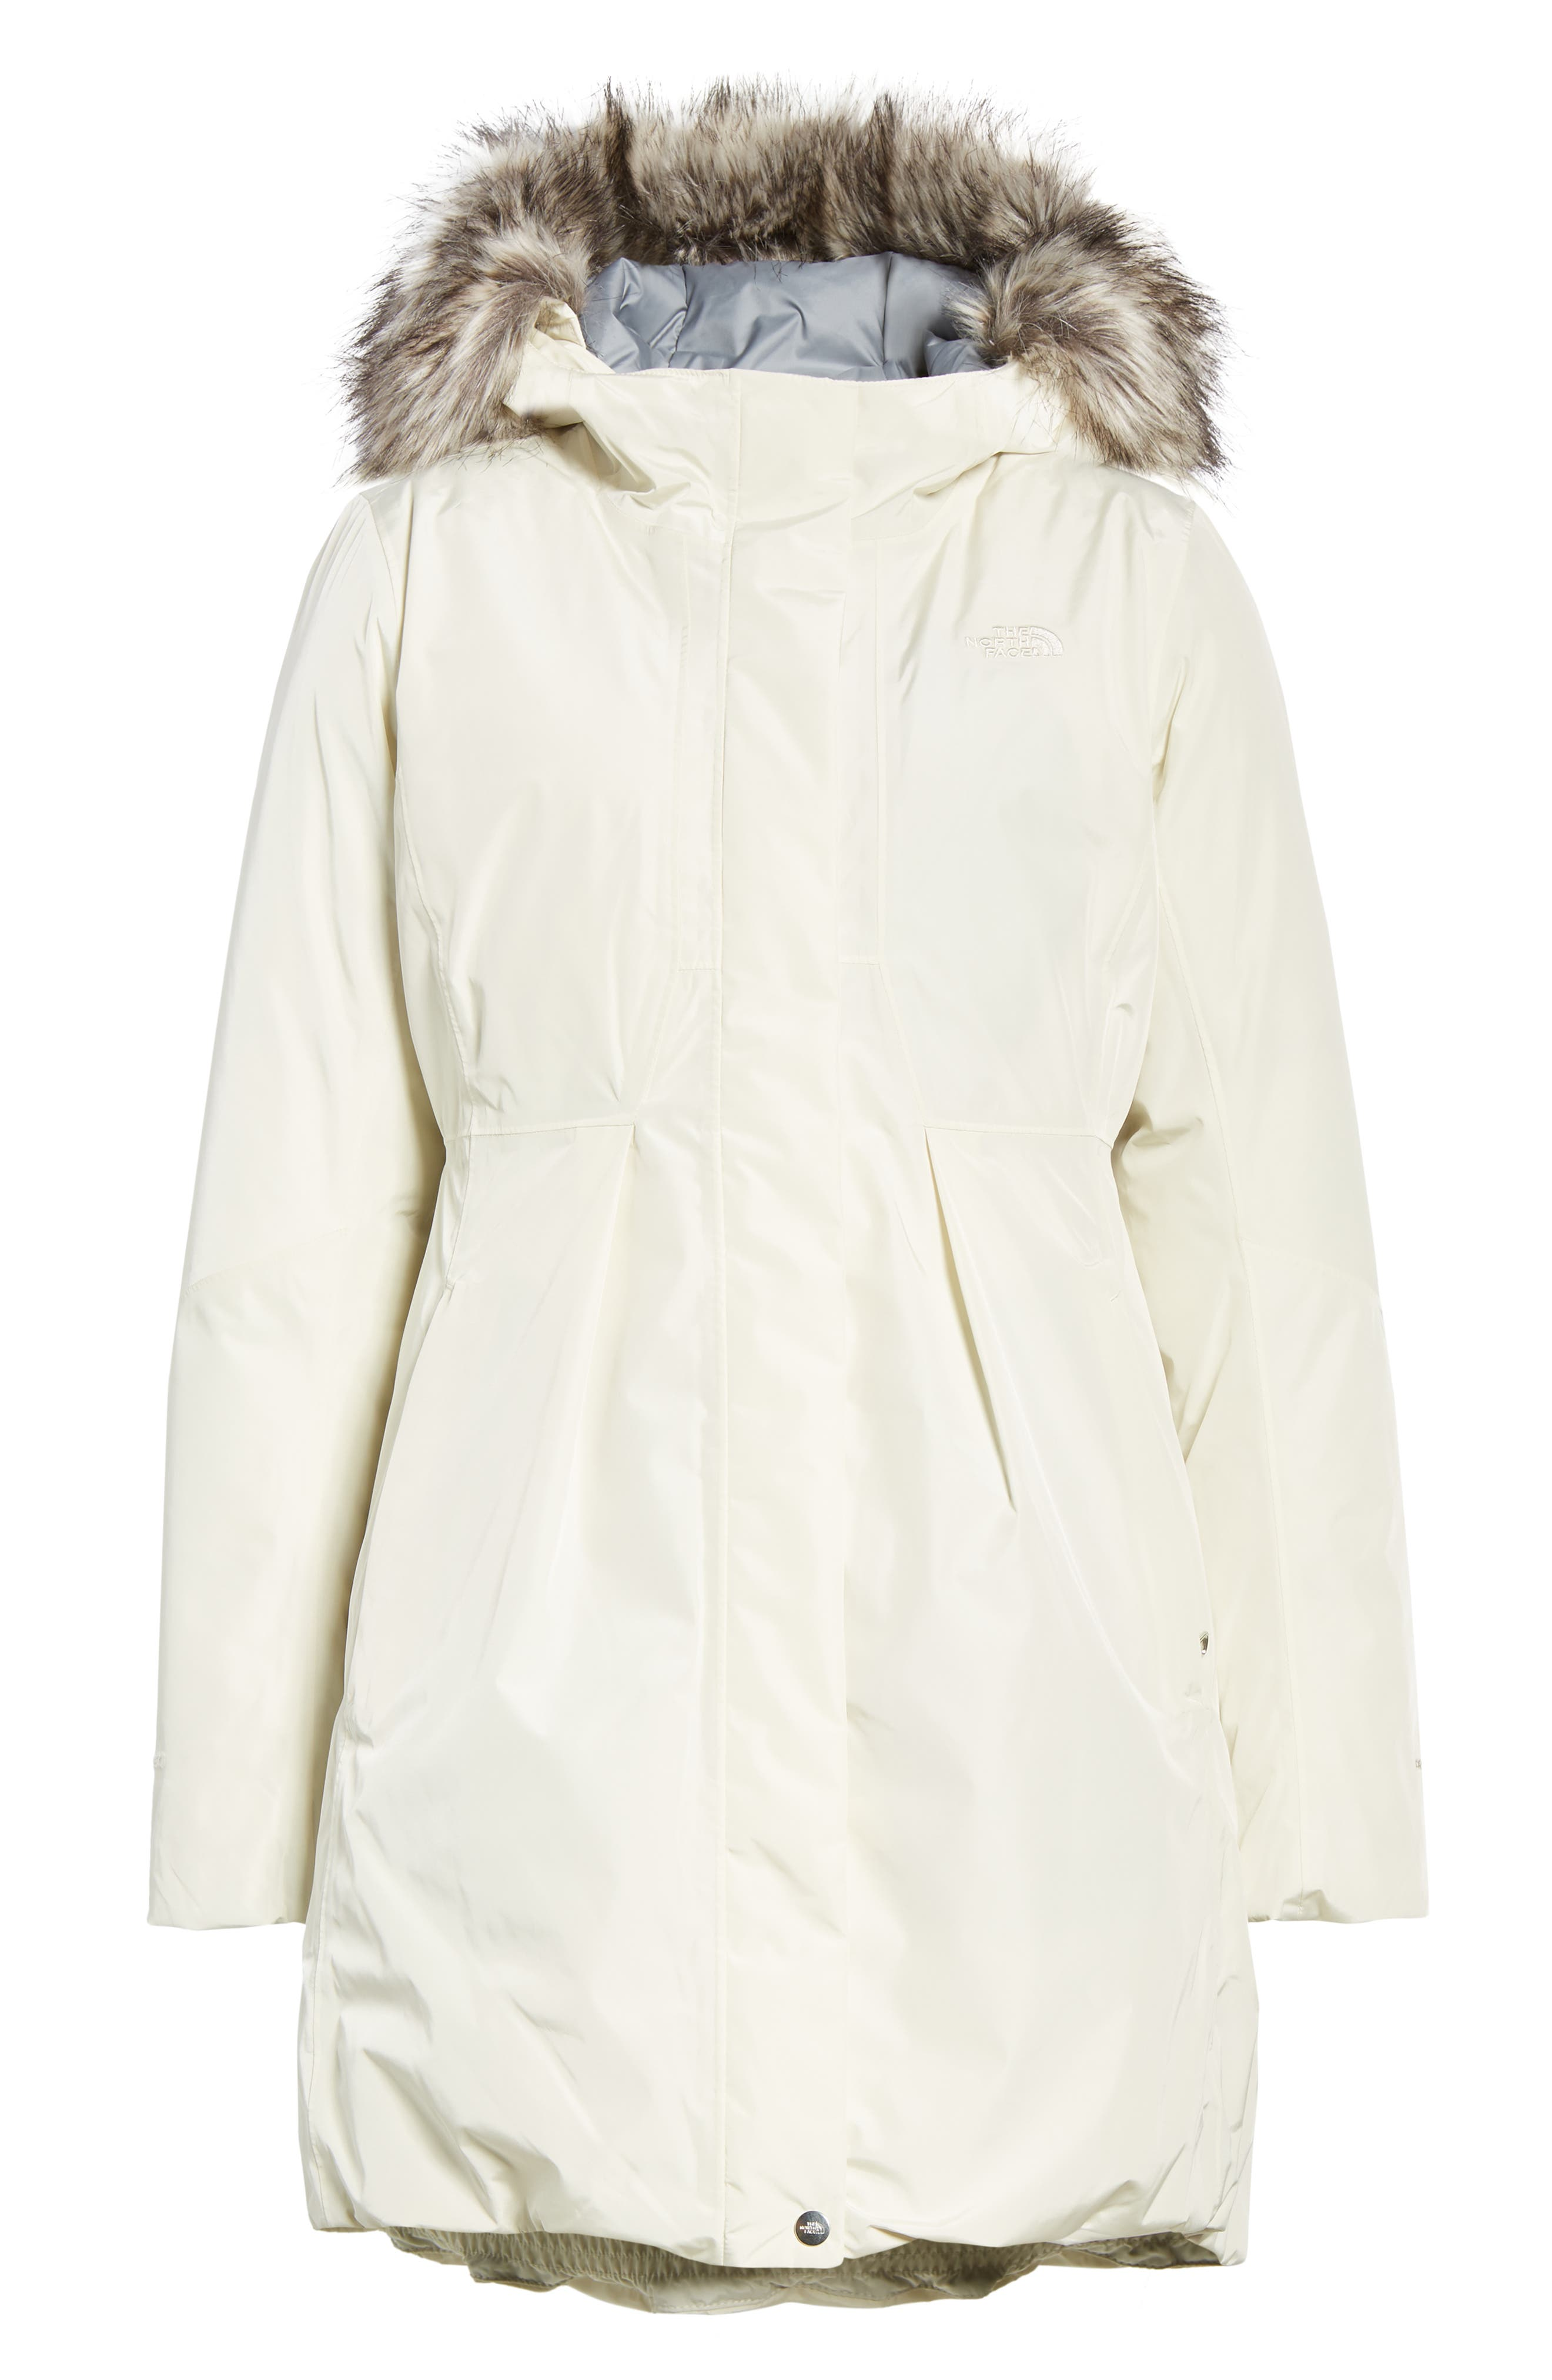 THE NORTH FACE,                             Transarctic Mama Down Parka,                             Alternate thumbnail 6, color,                             VINTAGE WHITE